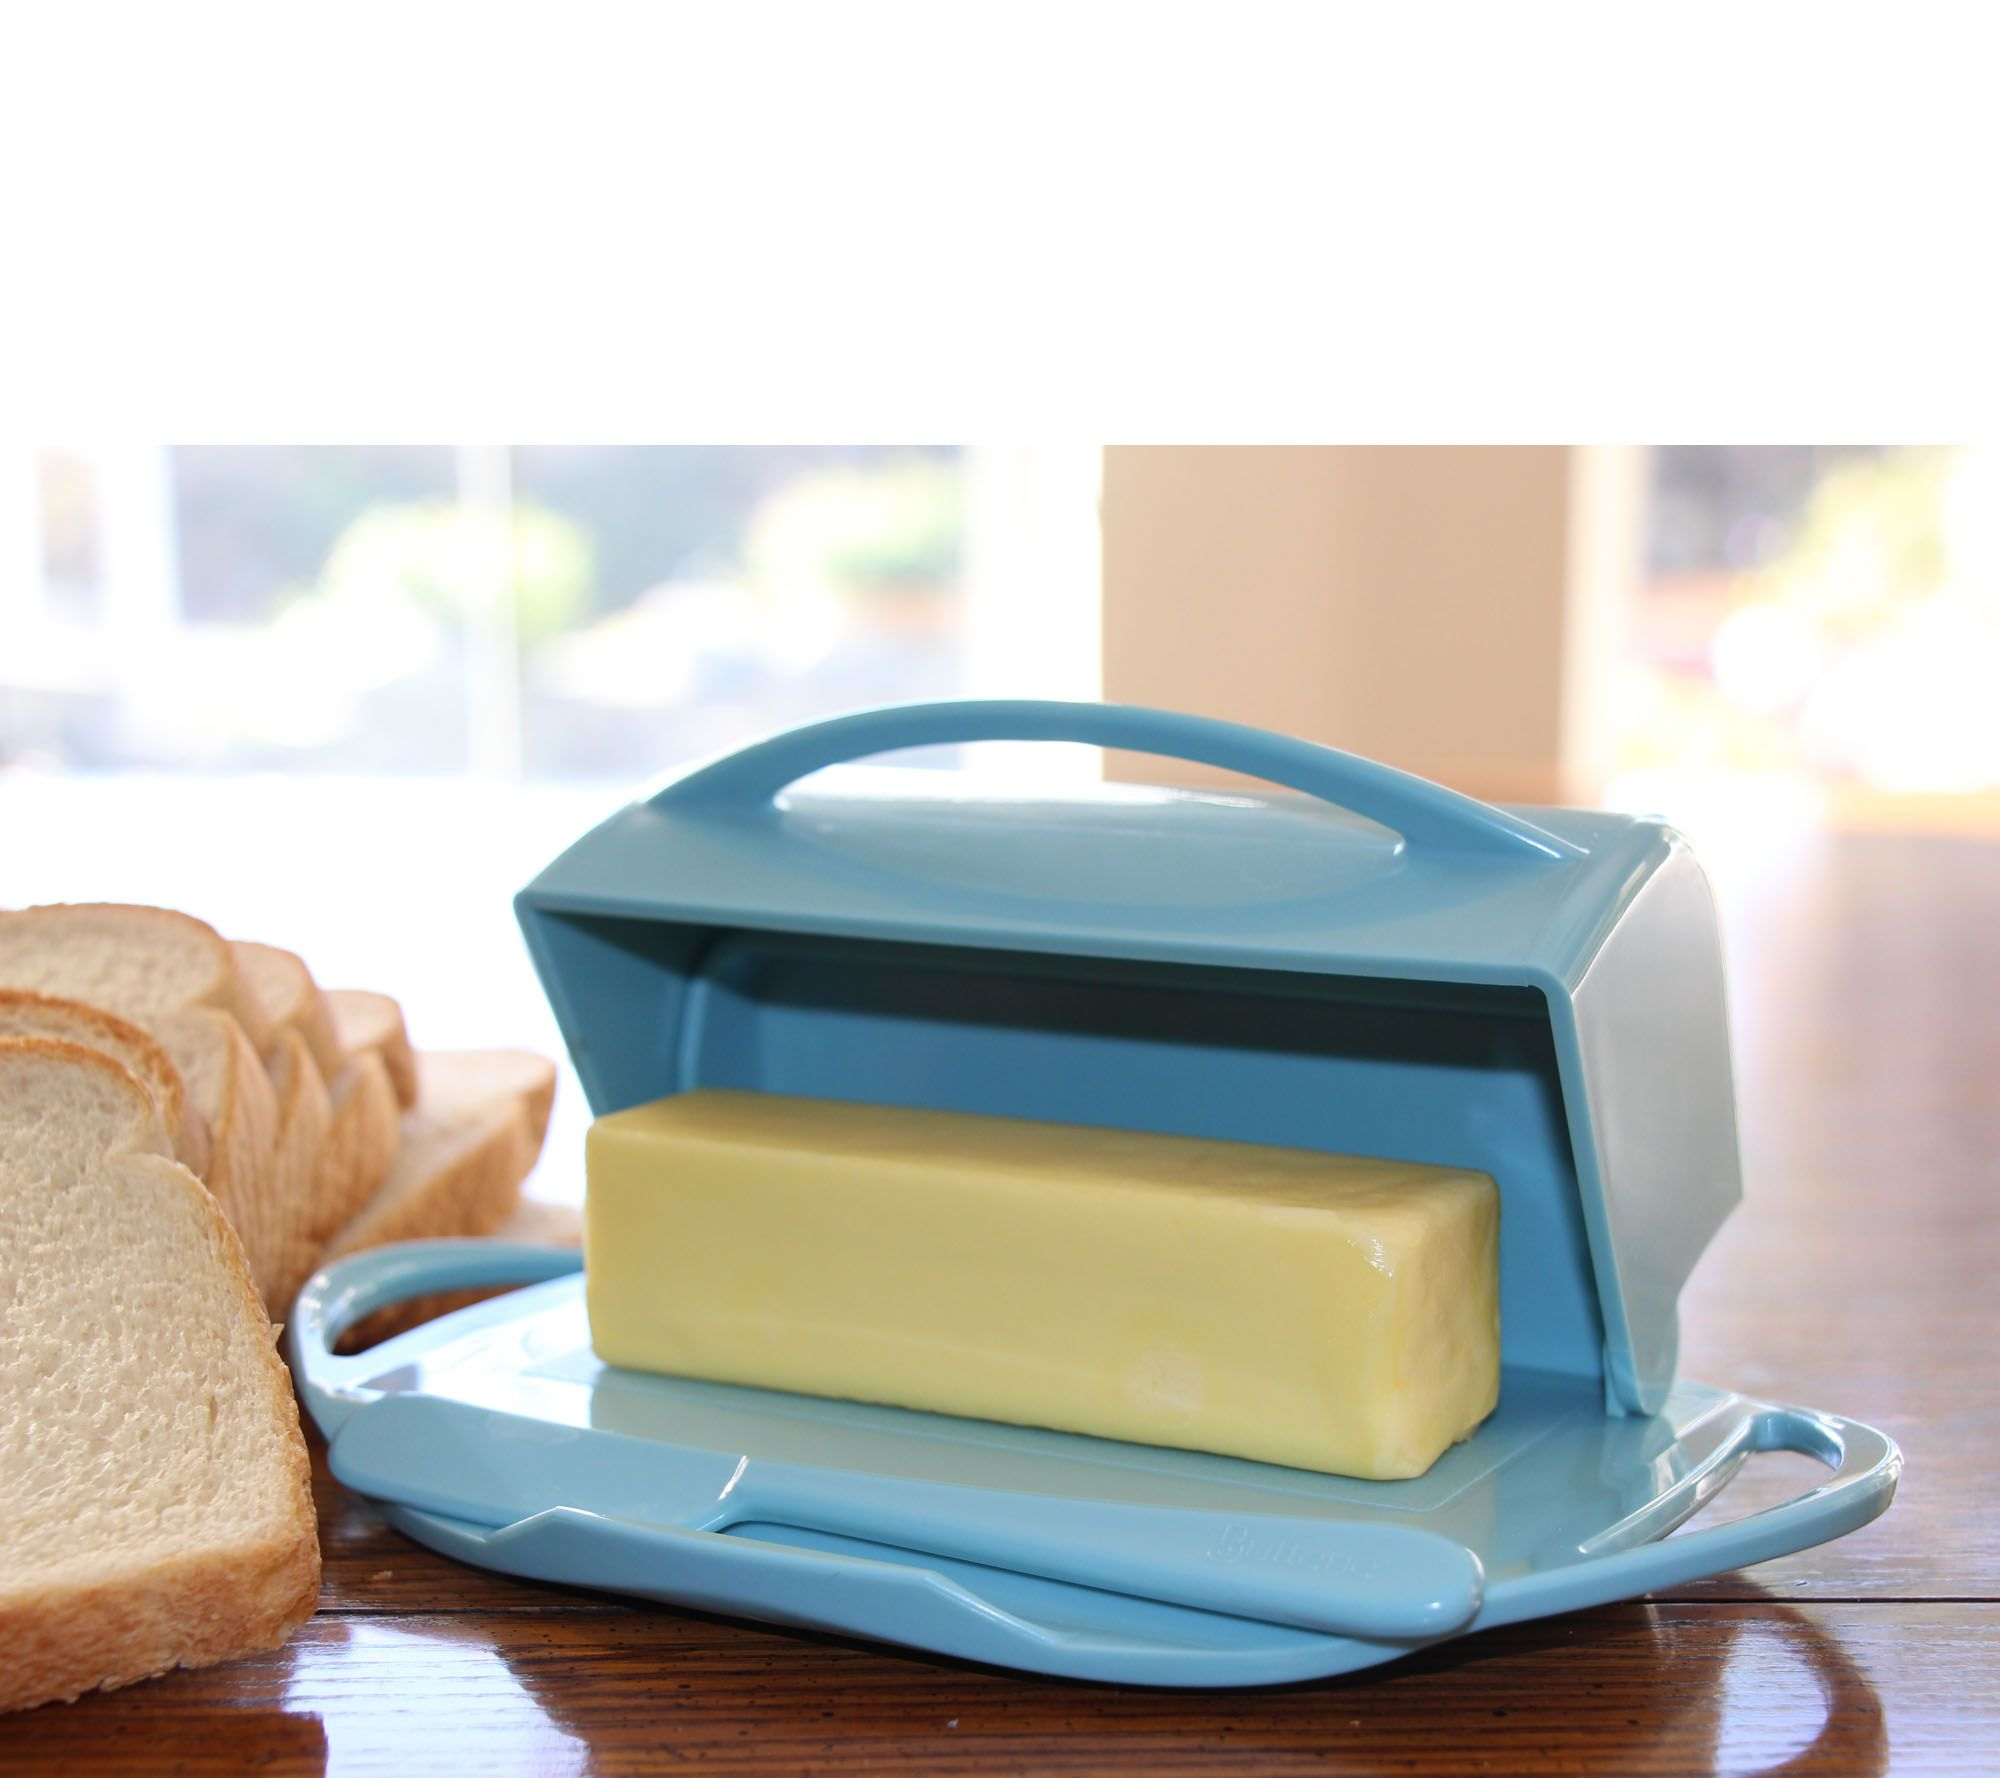 butterie s2 fliptop lid butter dishes w matching spreaders page 1 u2014 qvccom